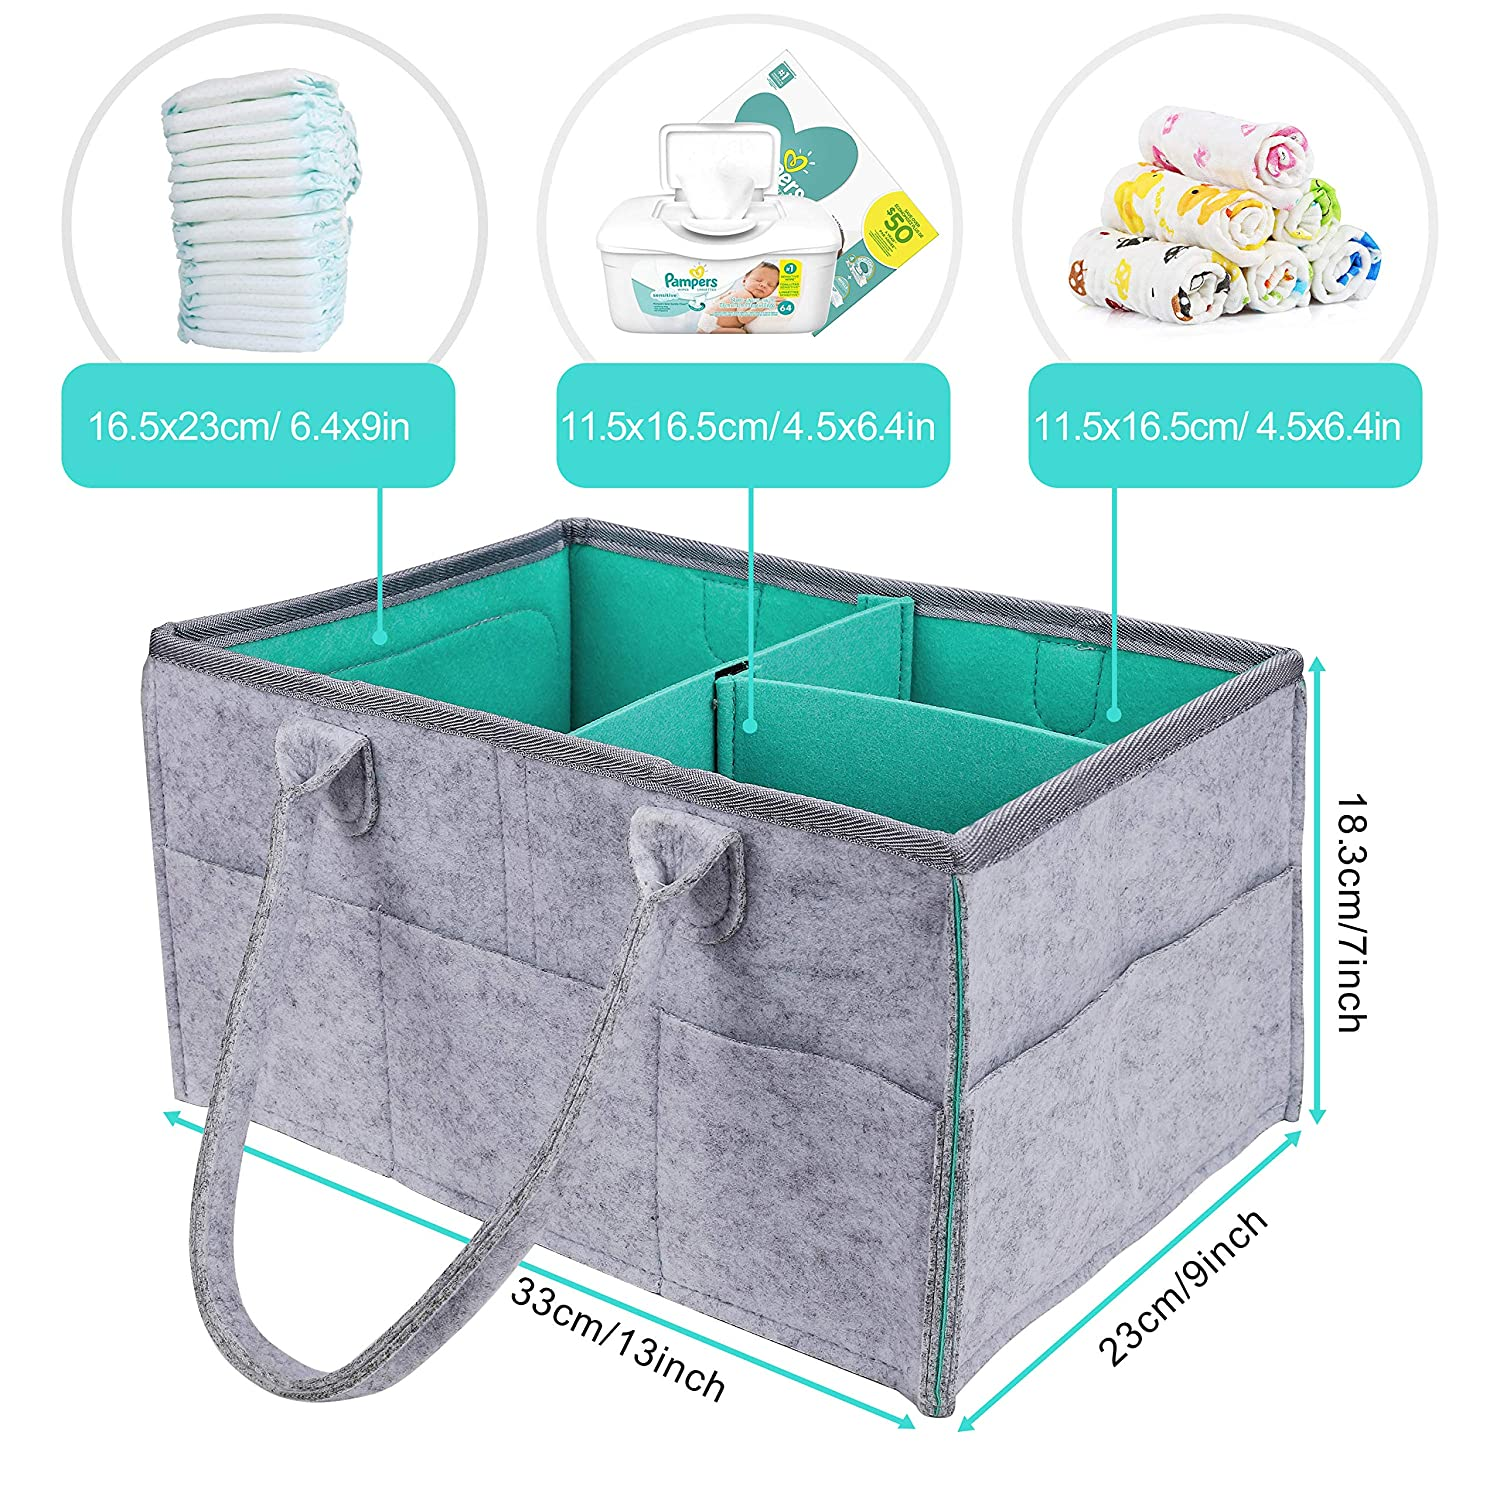 Foldable Basket Nursery Essentials Storage Bin Baby Diaper Caddy Organizer Grey Large Care Holder Wipes Bag with Removable Partitions for Changing Table Car Travel